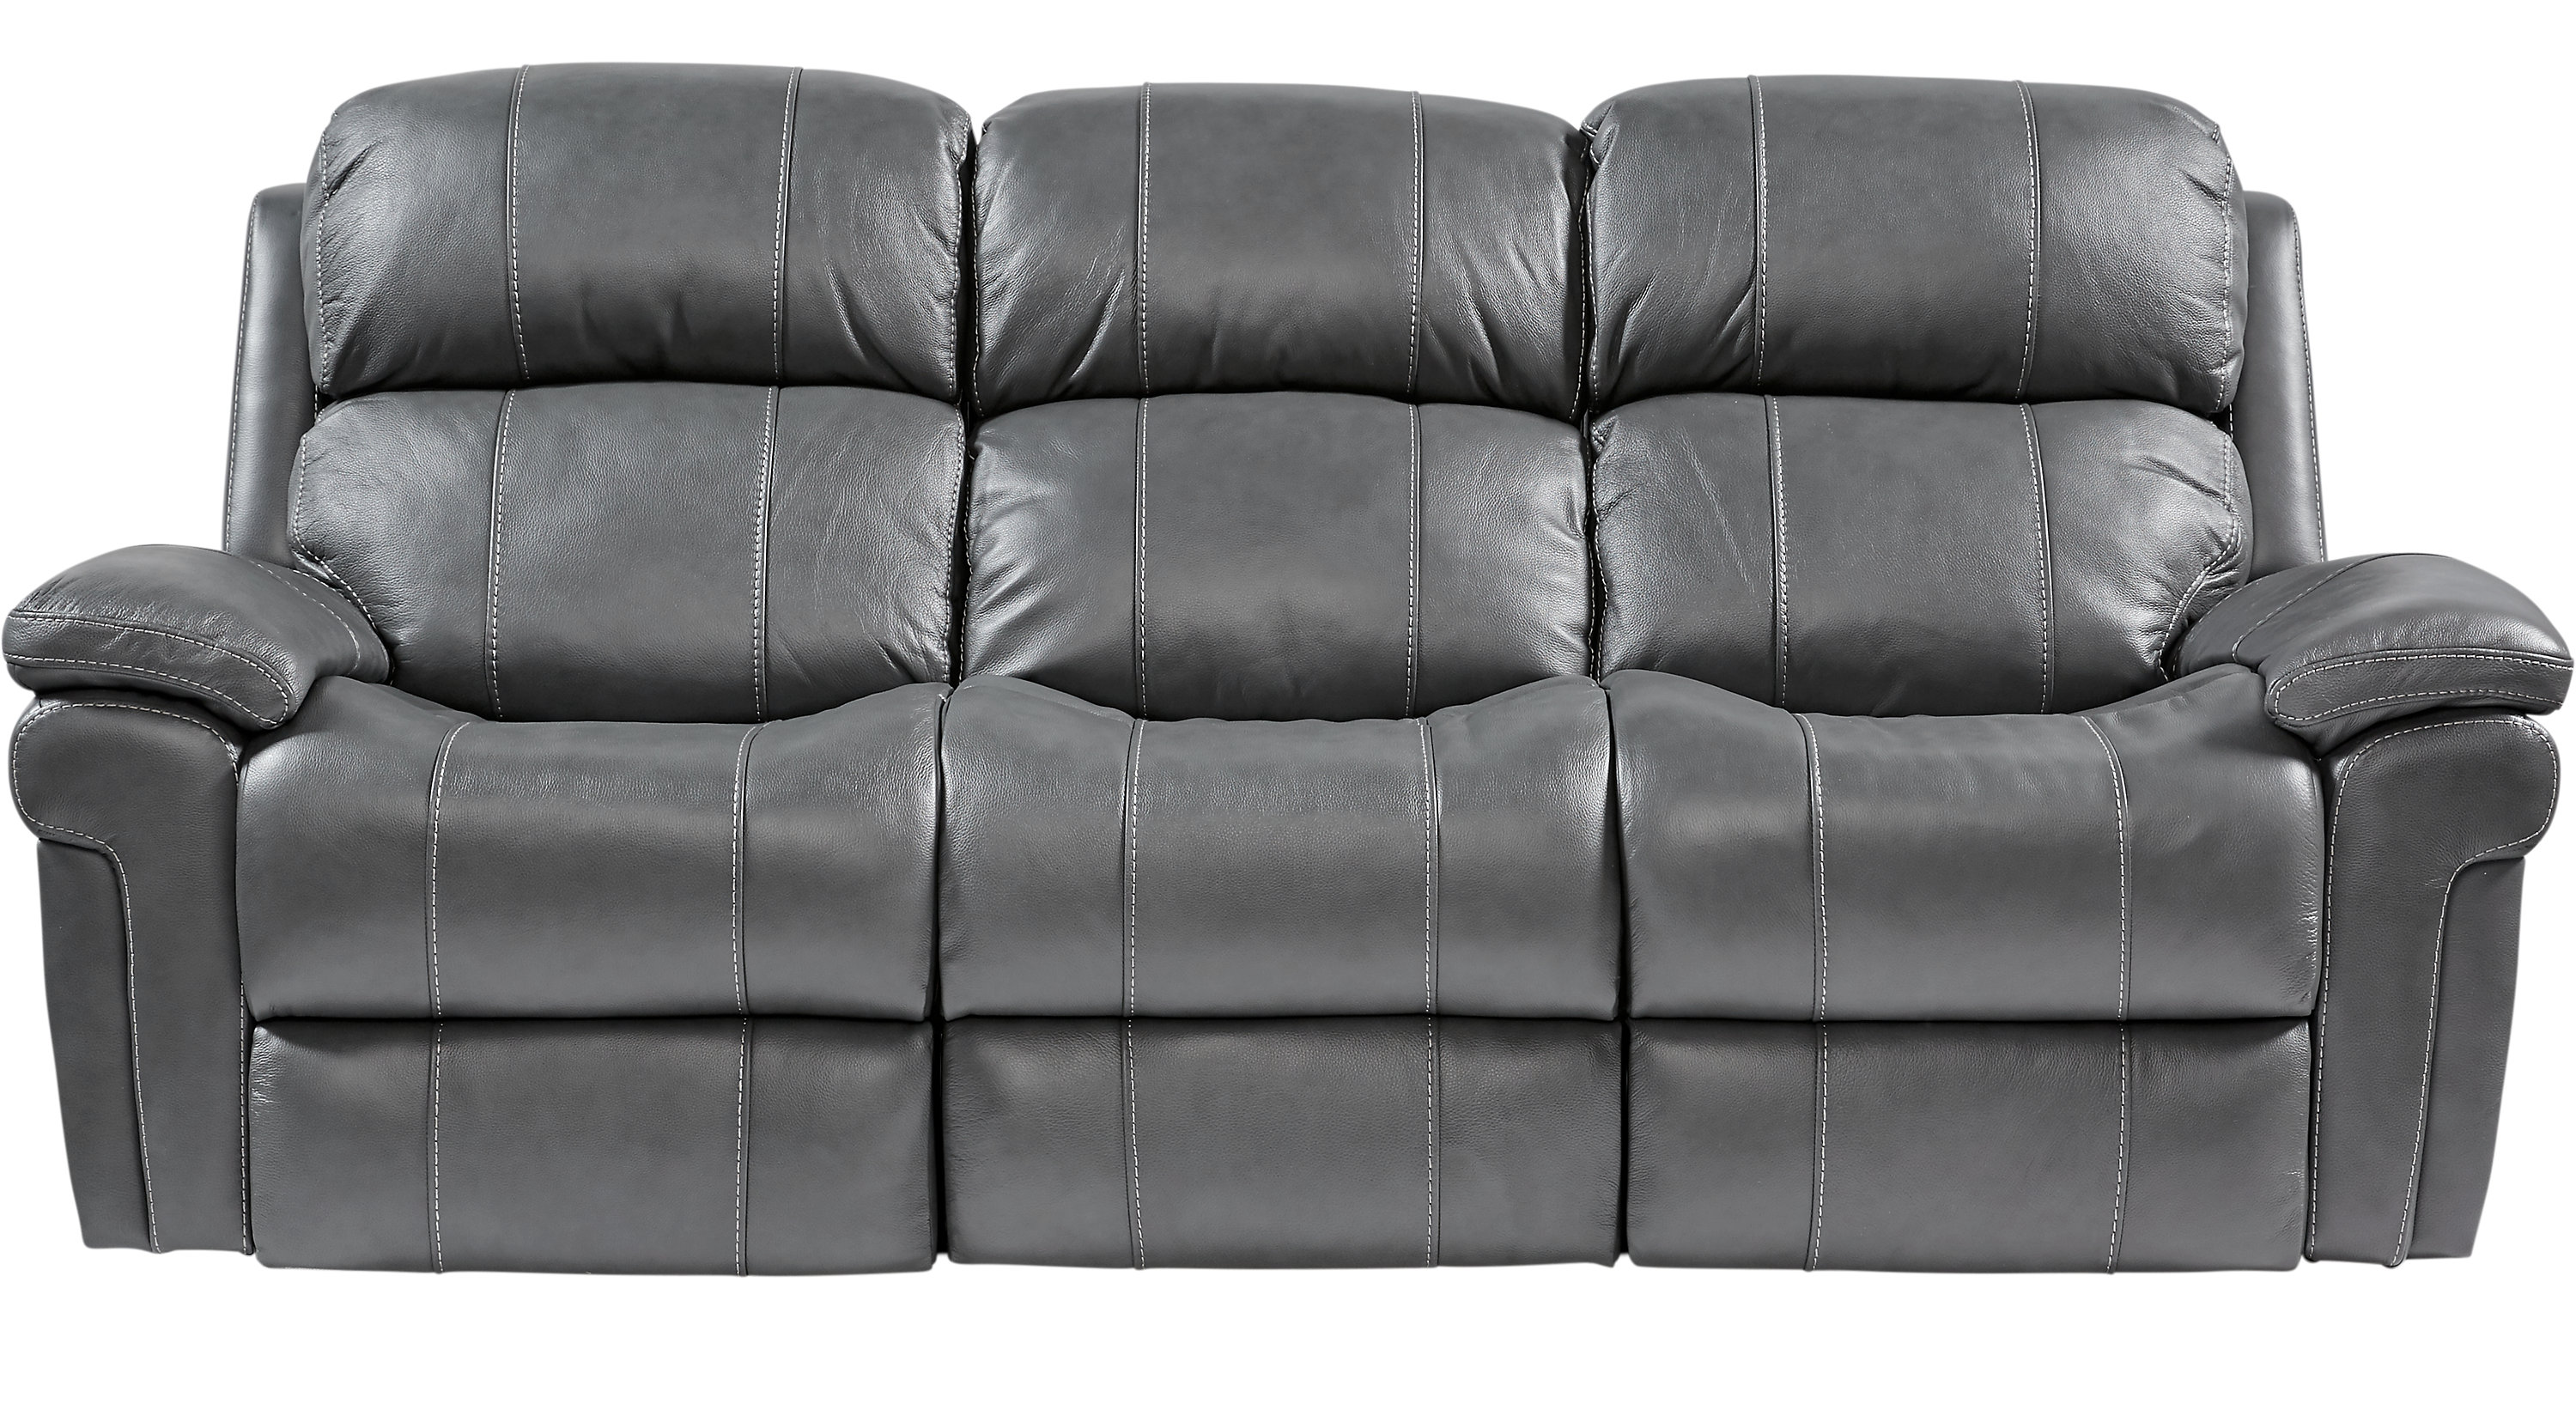 Trevino Smoke Leather Reclining Sofa